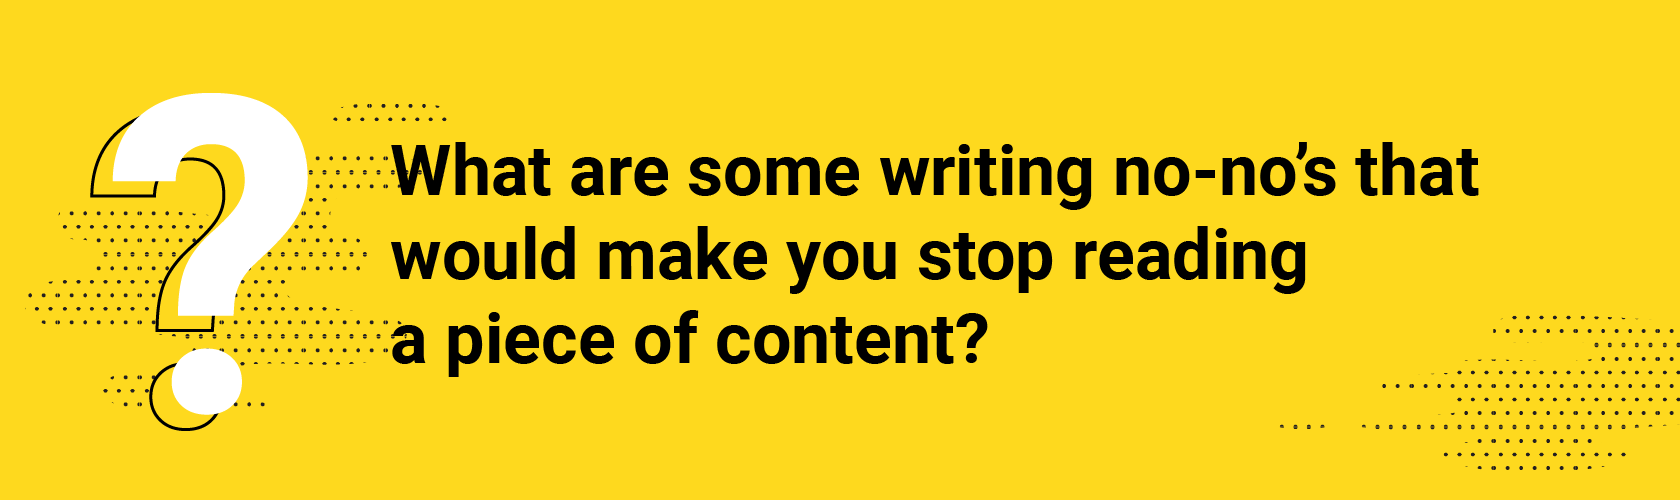 What are some writing no-no's that would make you stop reading a piece of content?